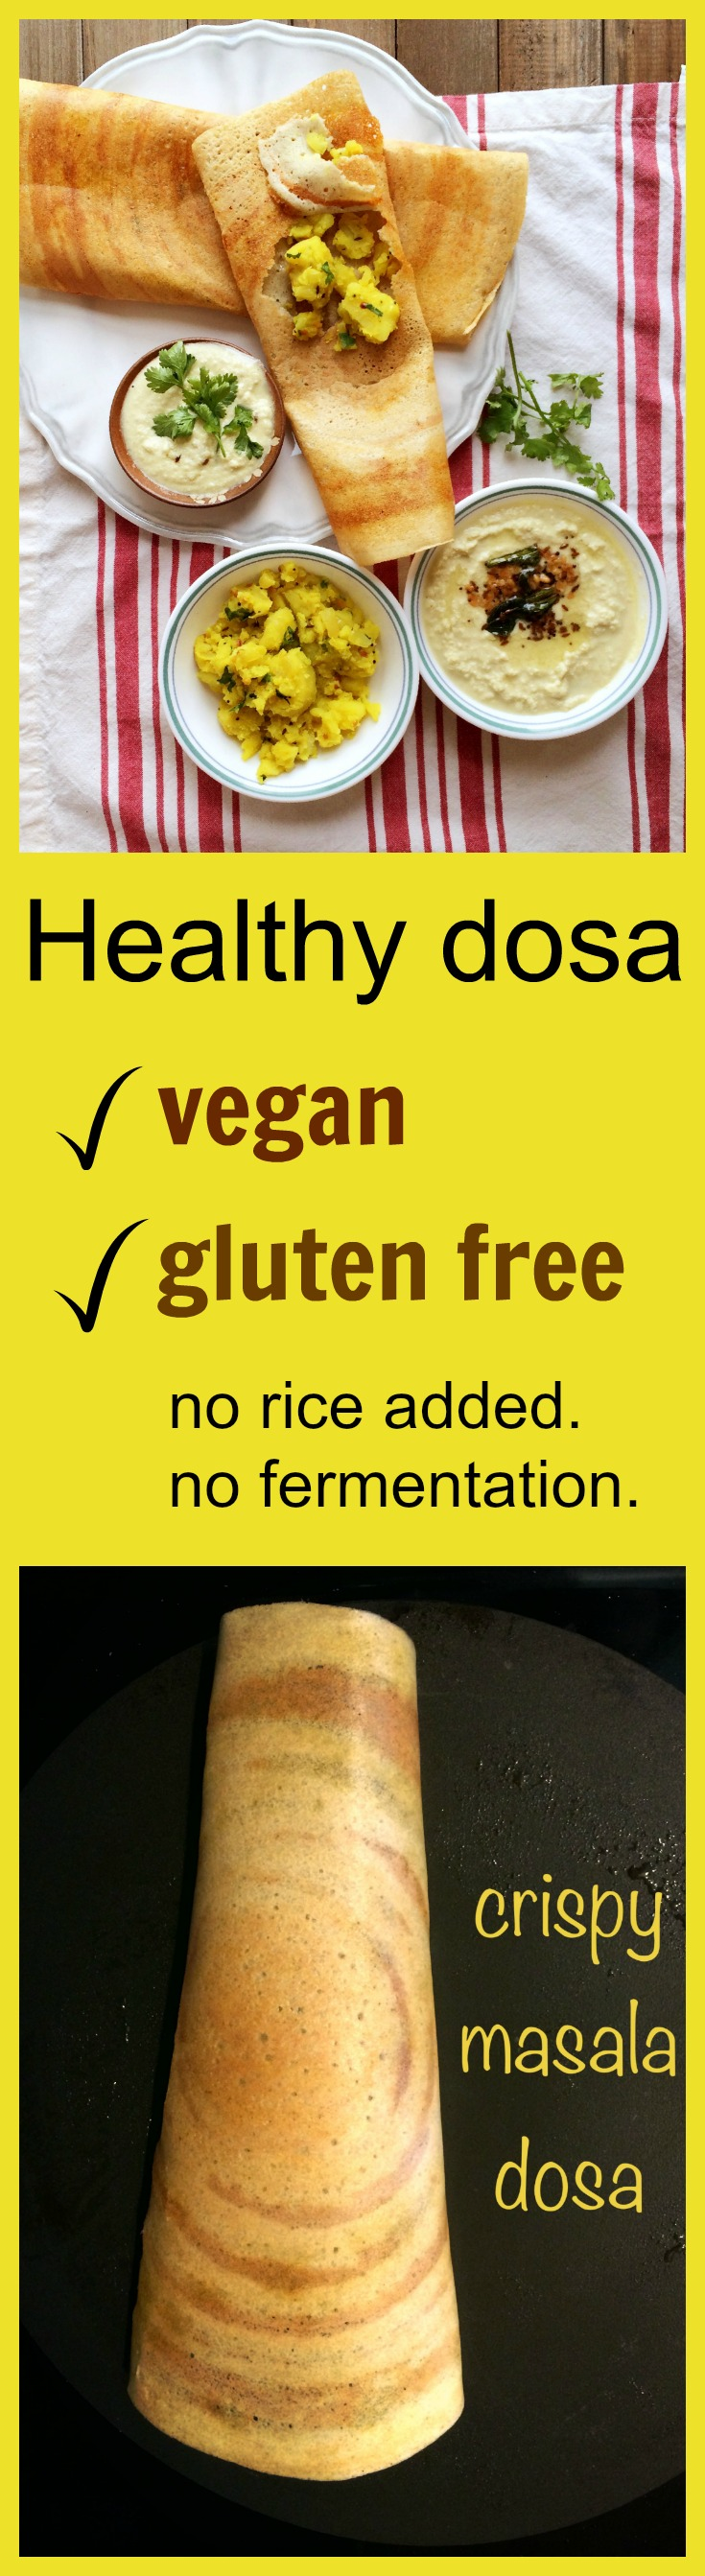 healthy no fermentation no rice dosa #vegan #glutenfree #crepes #indian #instant